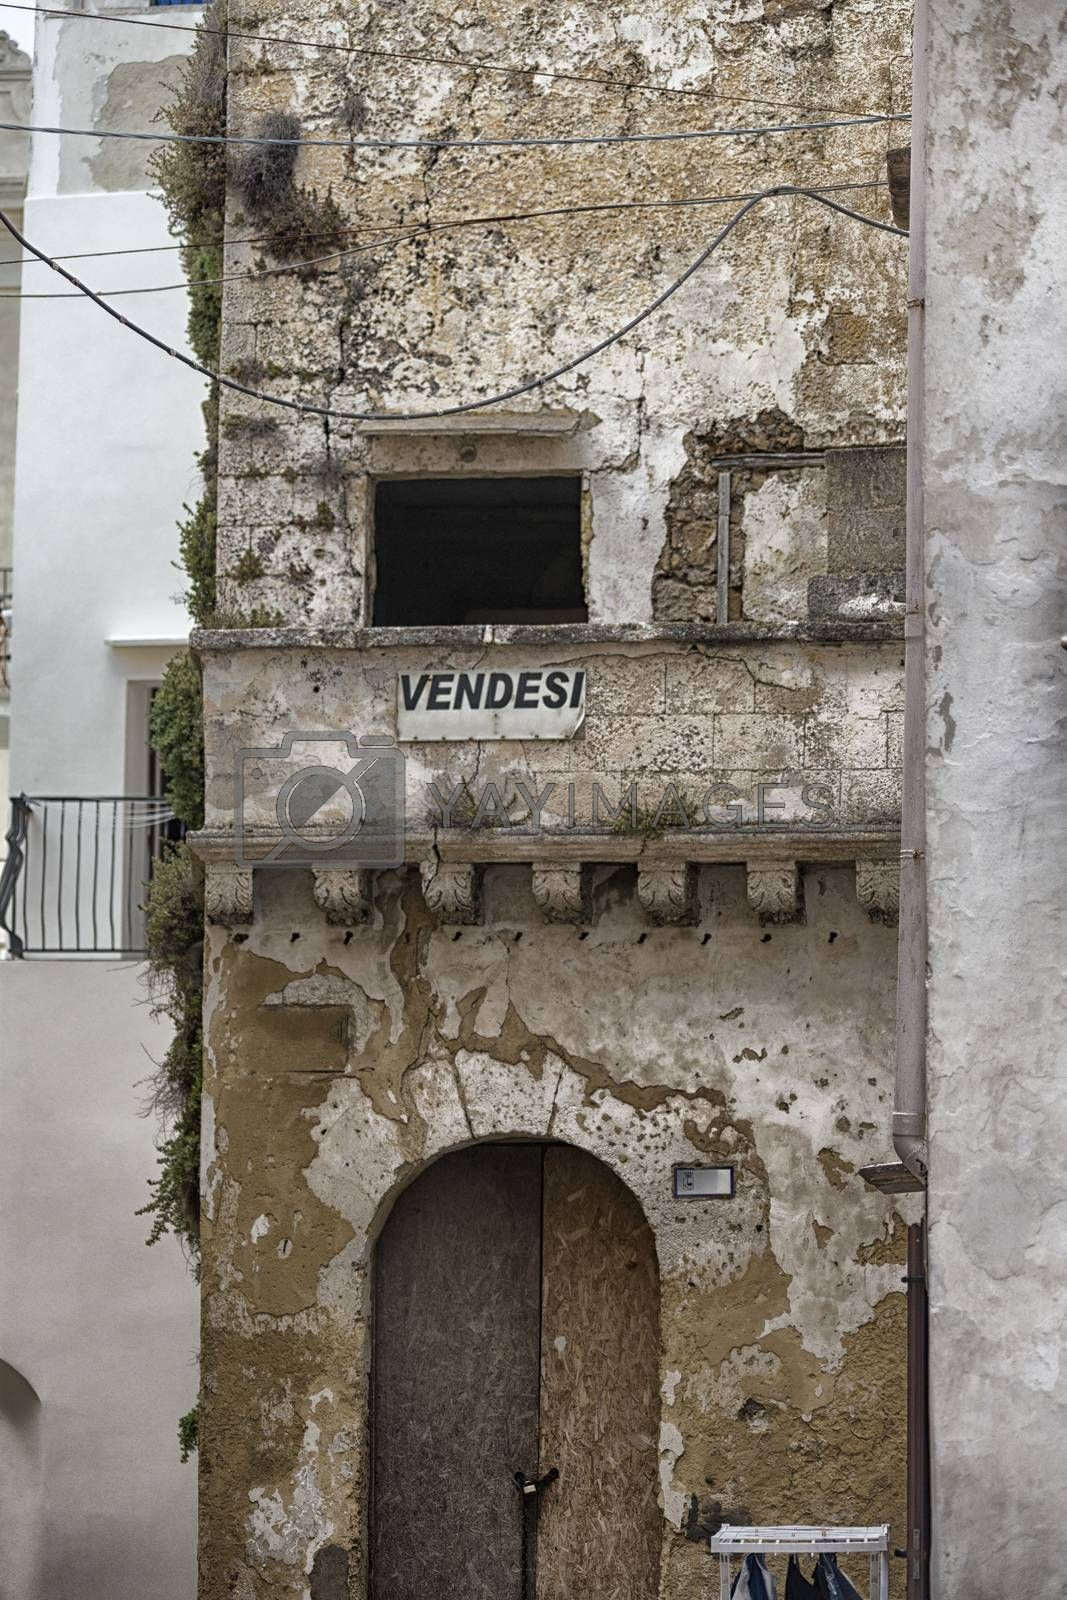 On Sale house in the old town of Gallipoli (Le)) in the southern of Italy